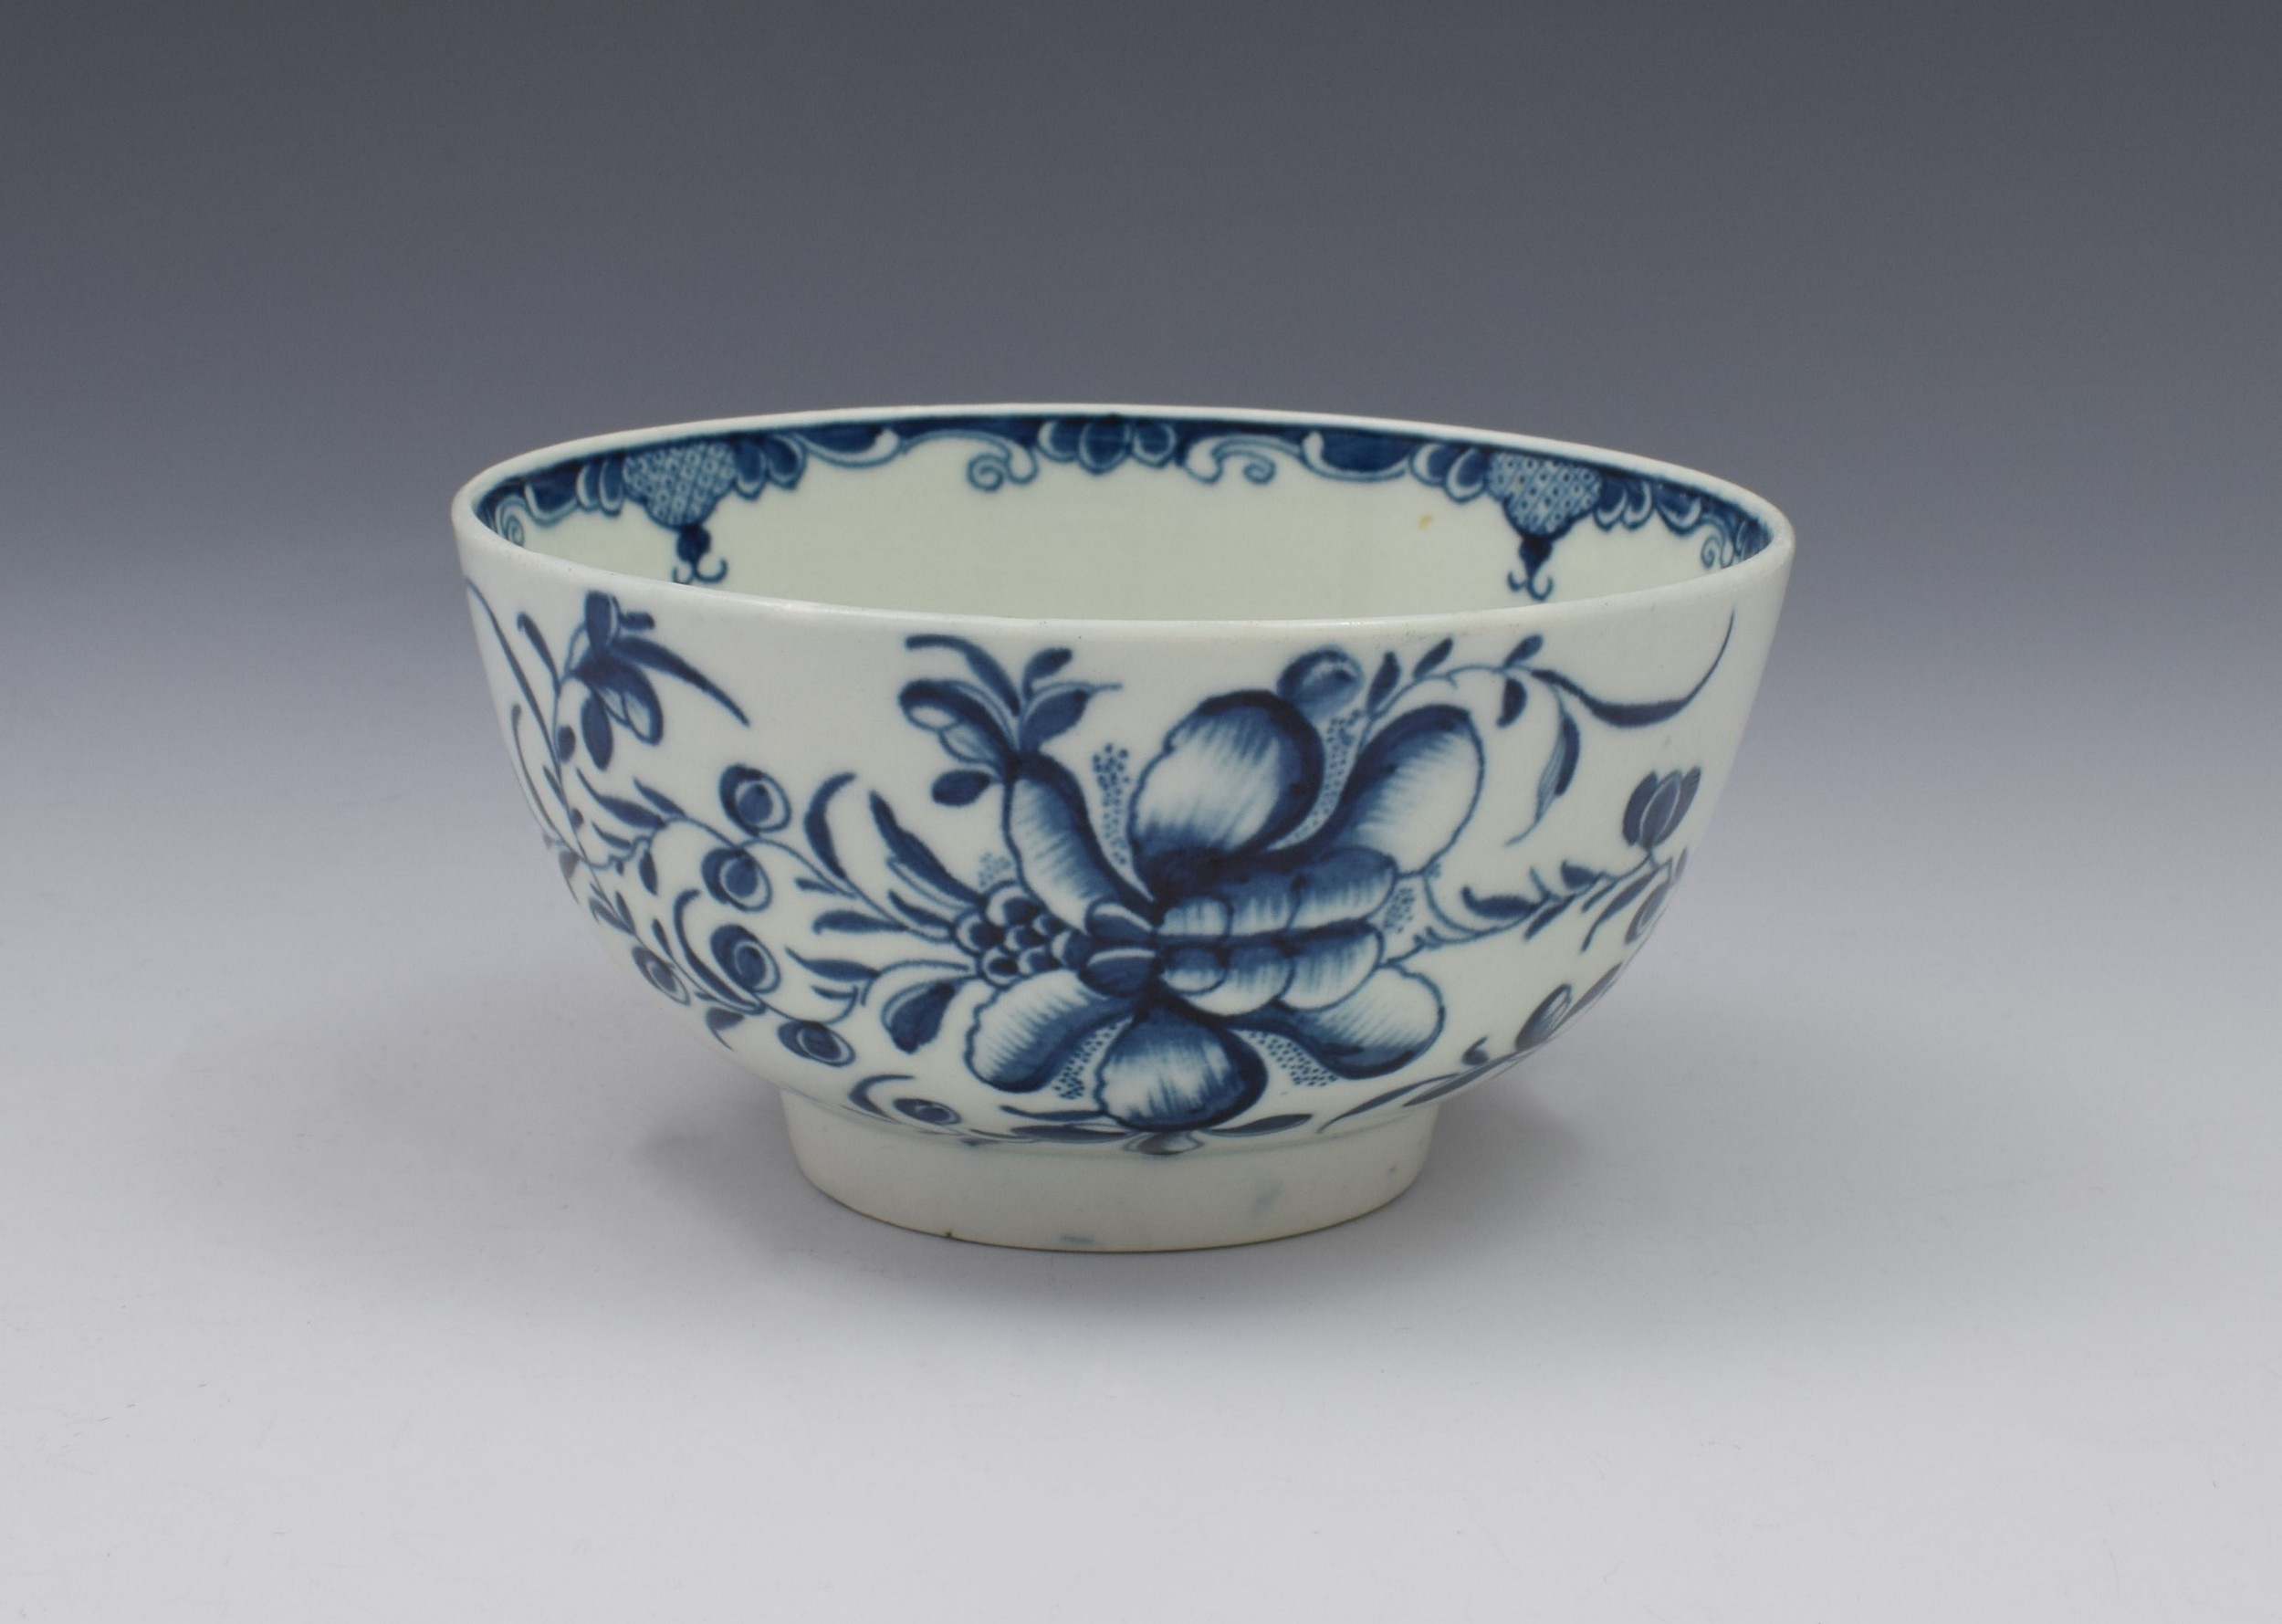 first period worcester mansfield pattern slop bowl c1775